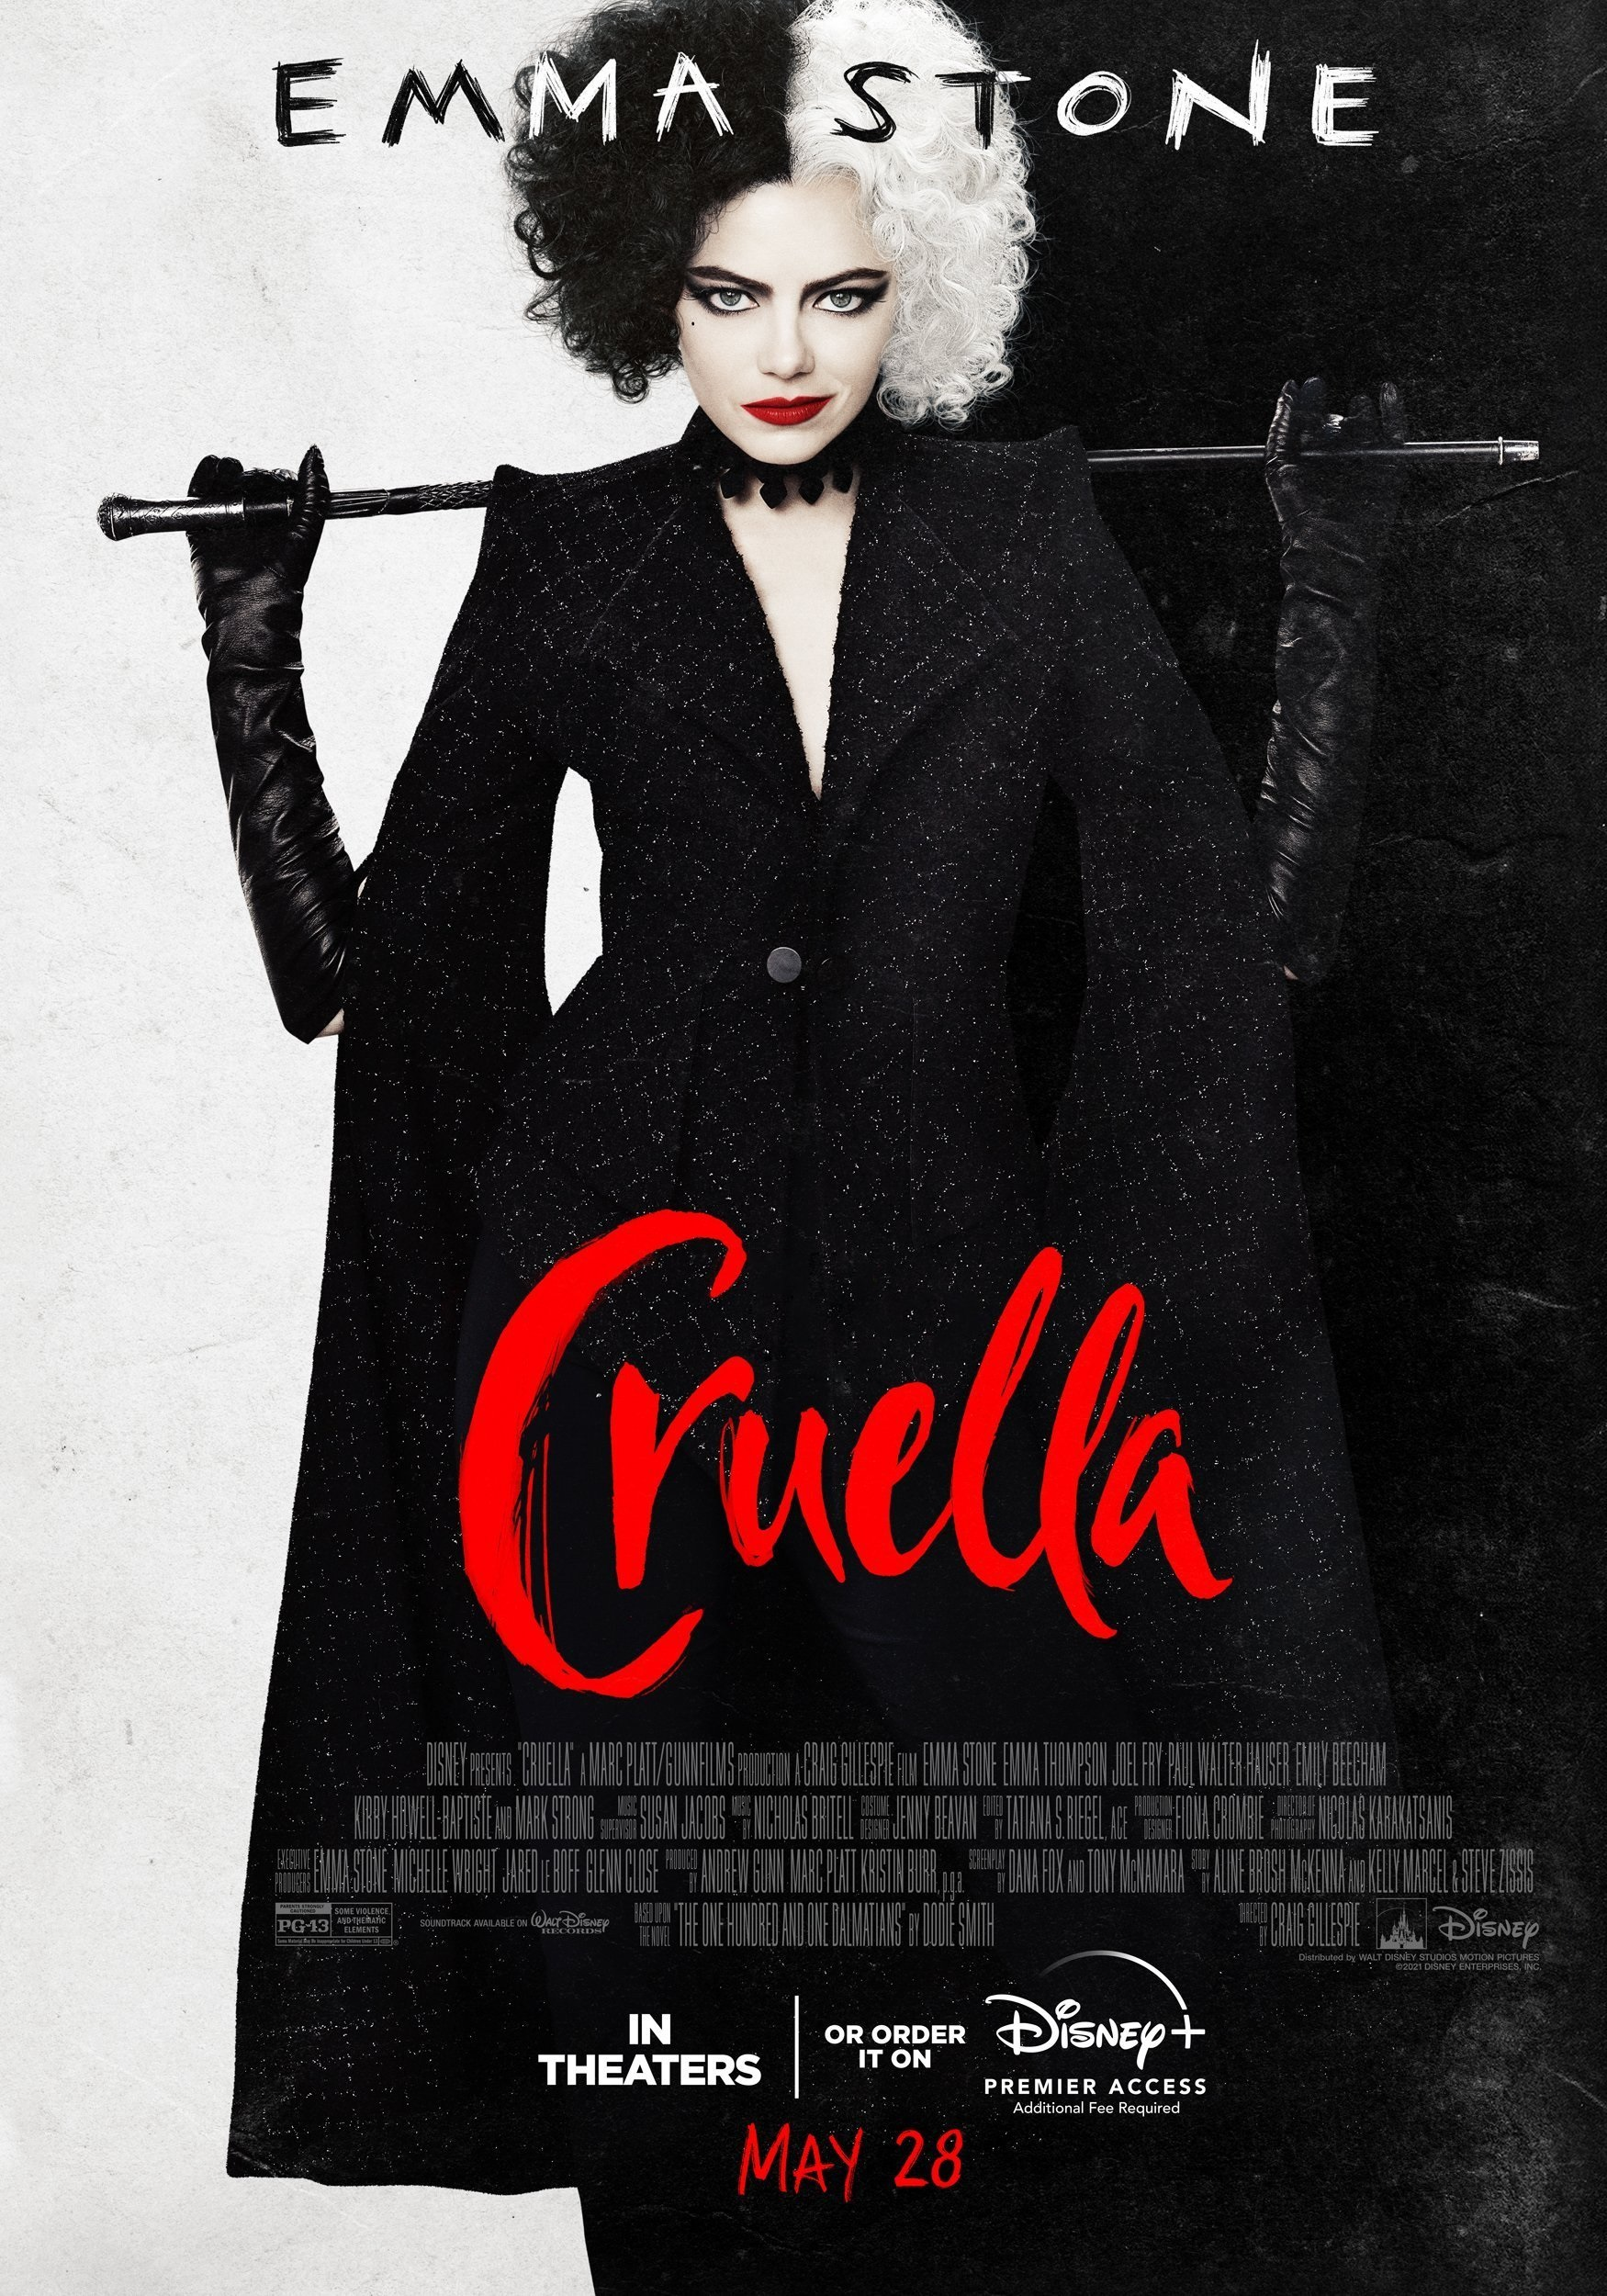 Cruella: Complaint from Emma Stone brought the film to theaters